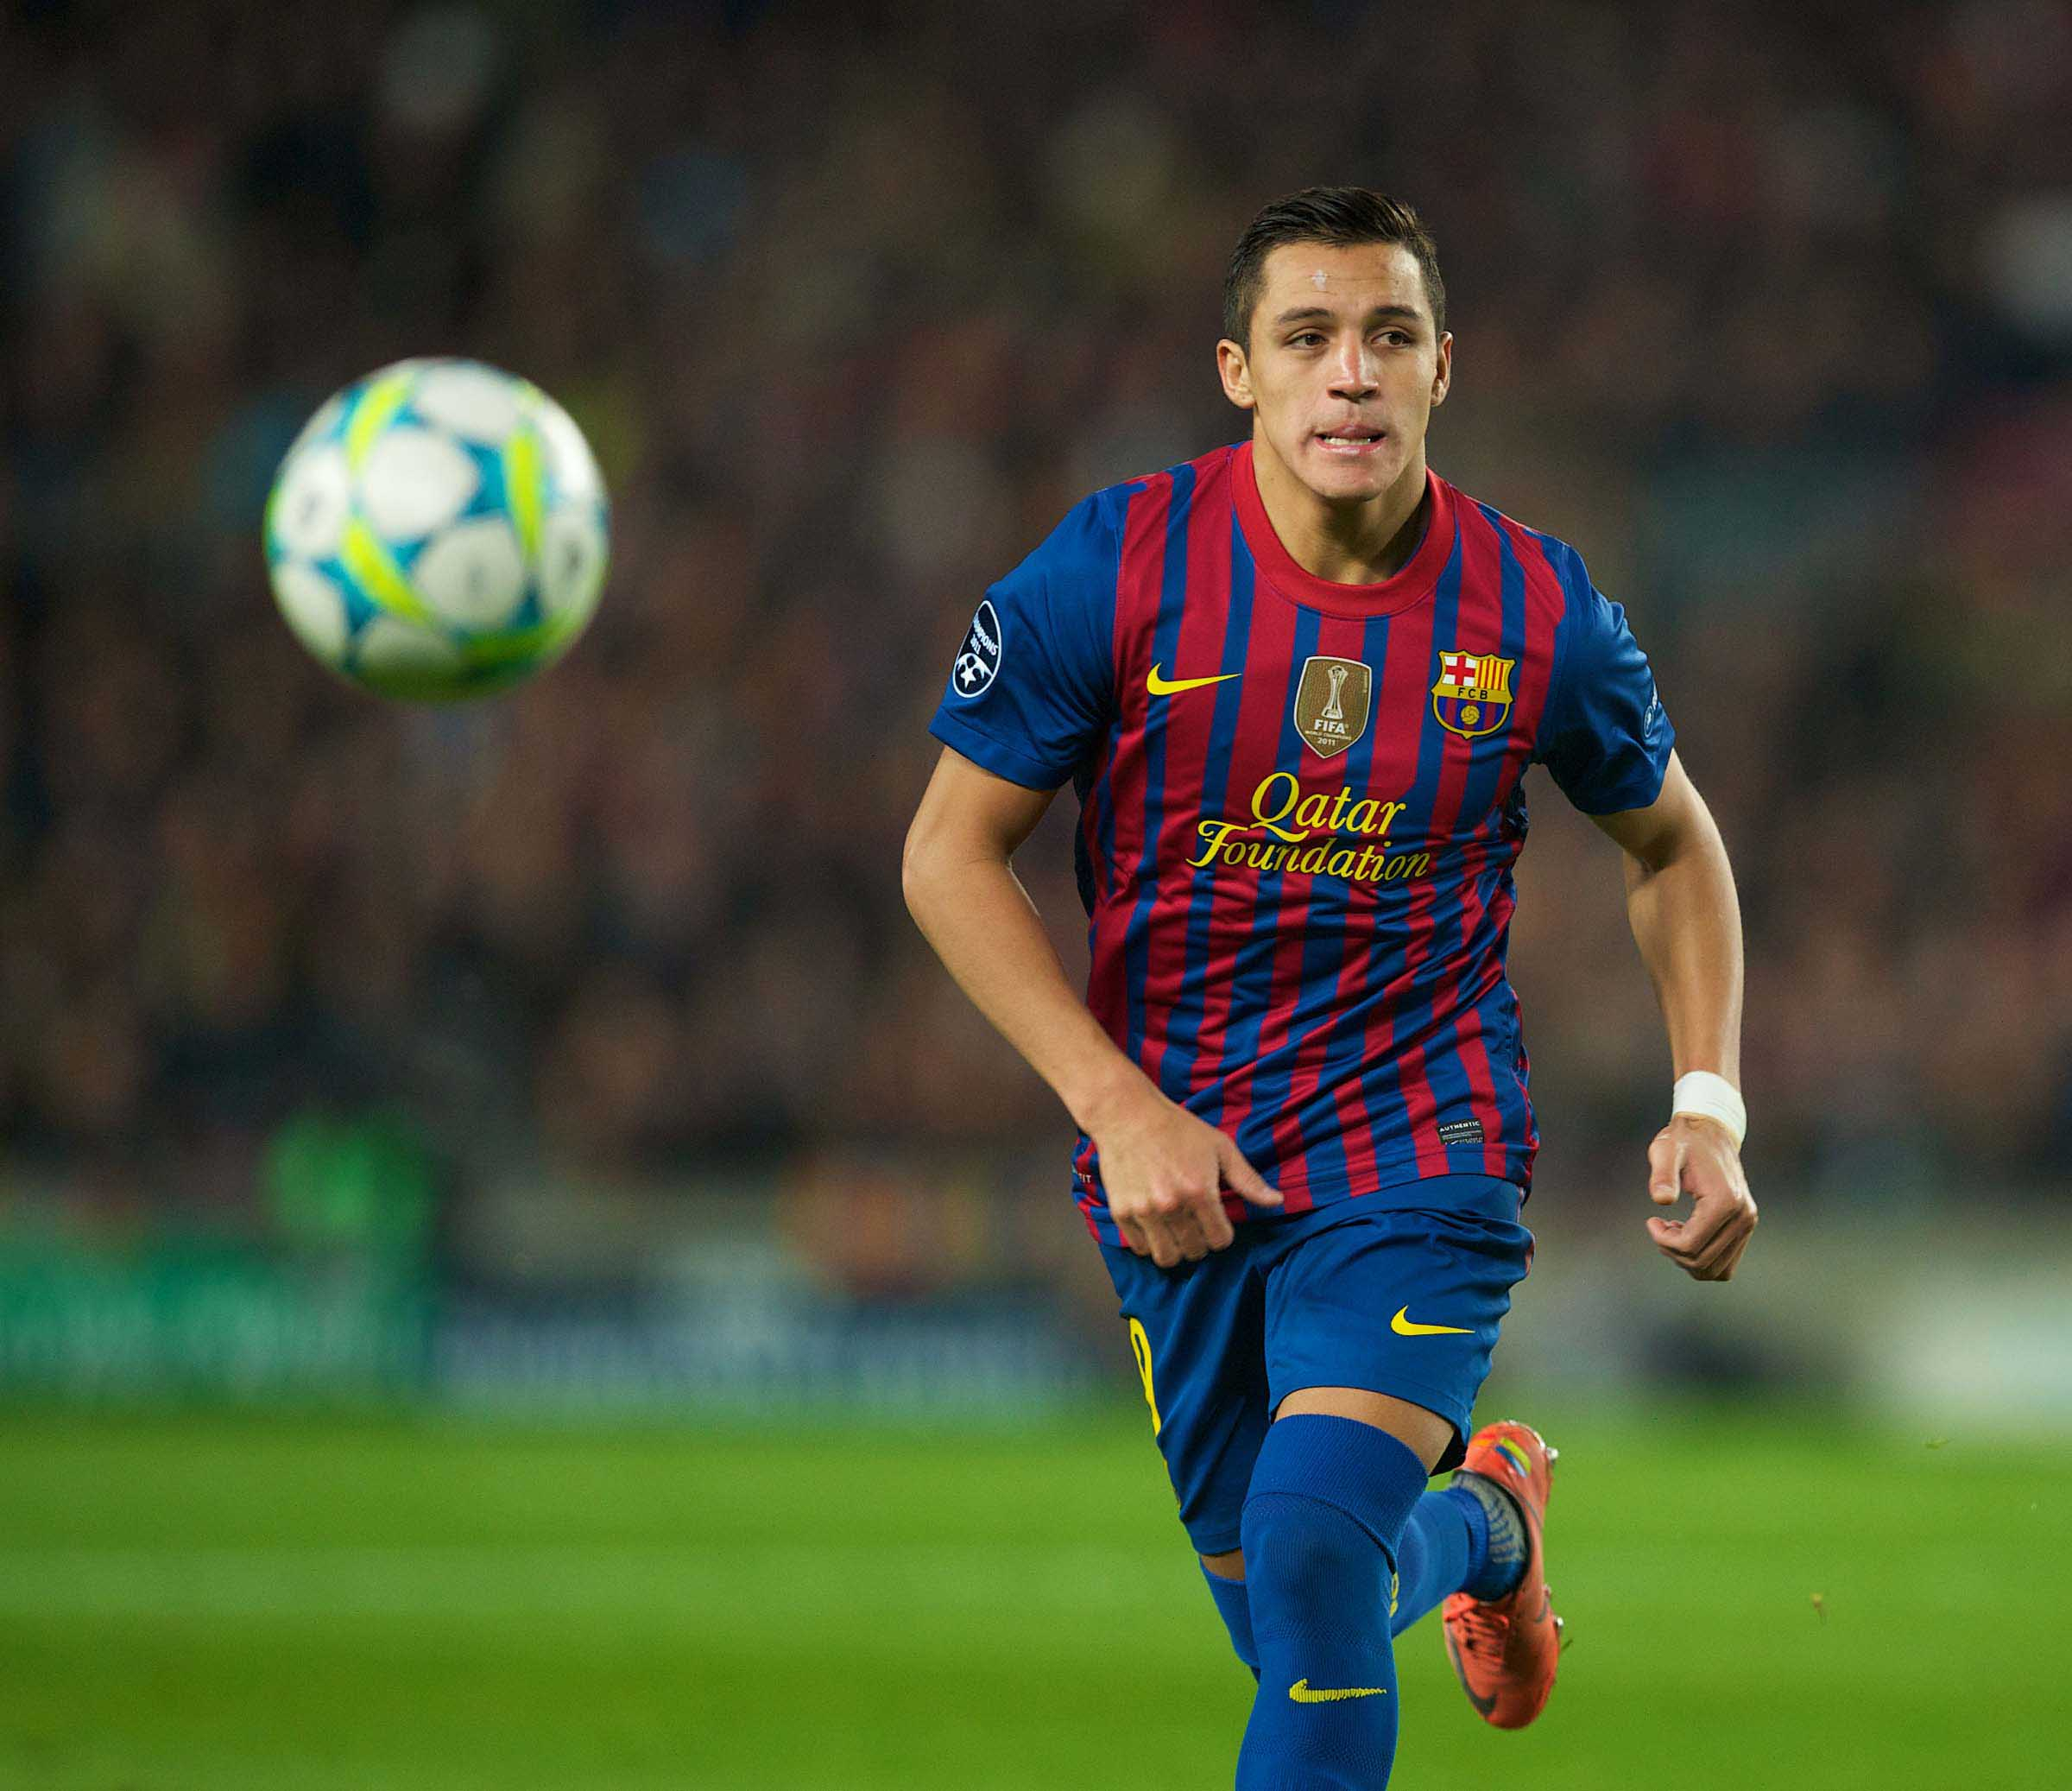 Arsenal V Liverpool The Sanchez Snub And Gunning For